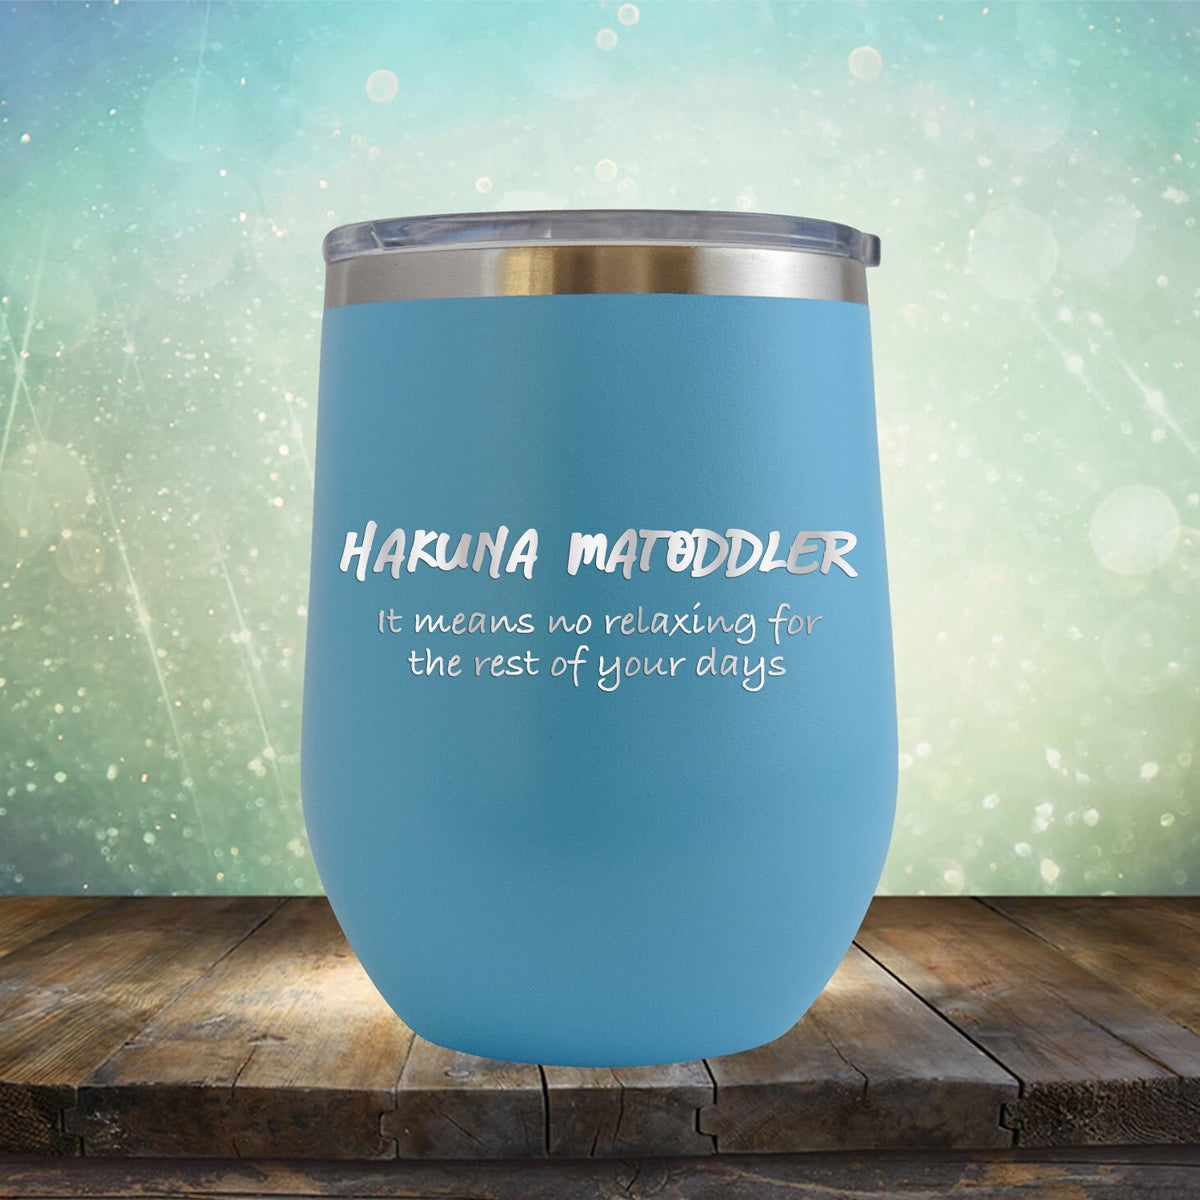 Hakuna Matoddler Means No Relaxing - Stemless Wine Cup